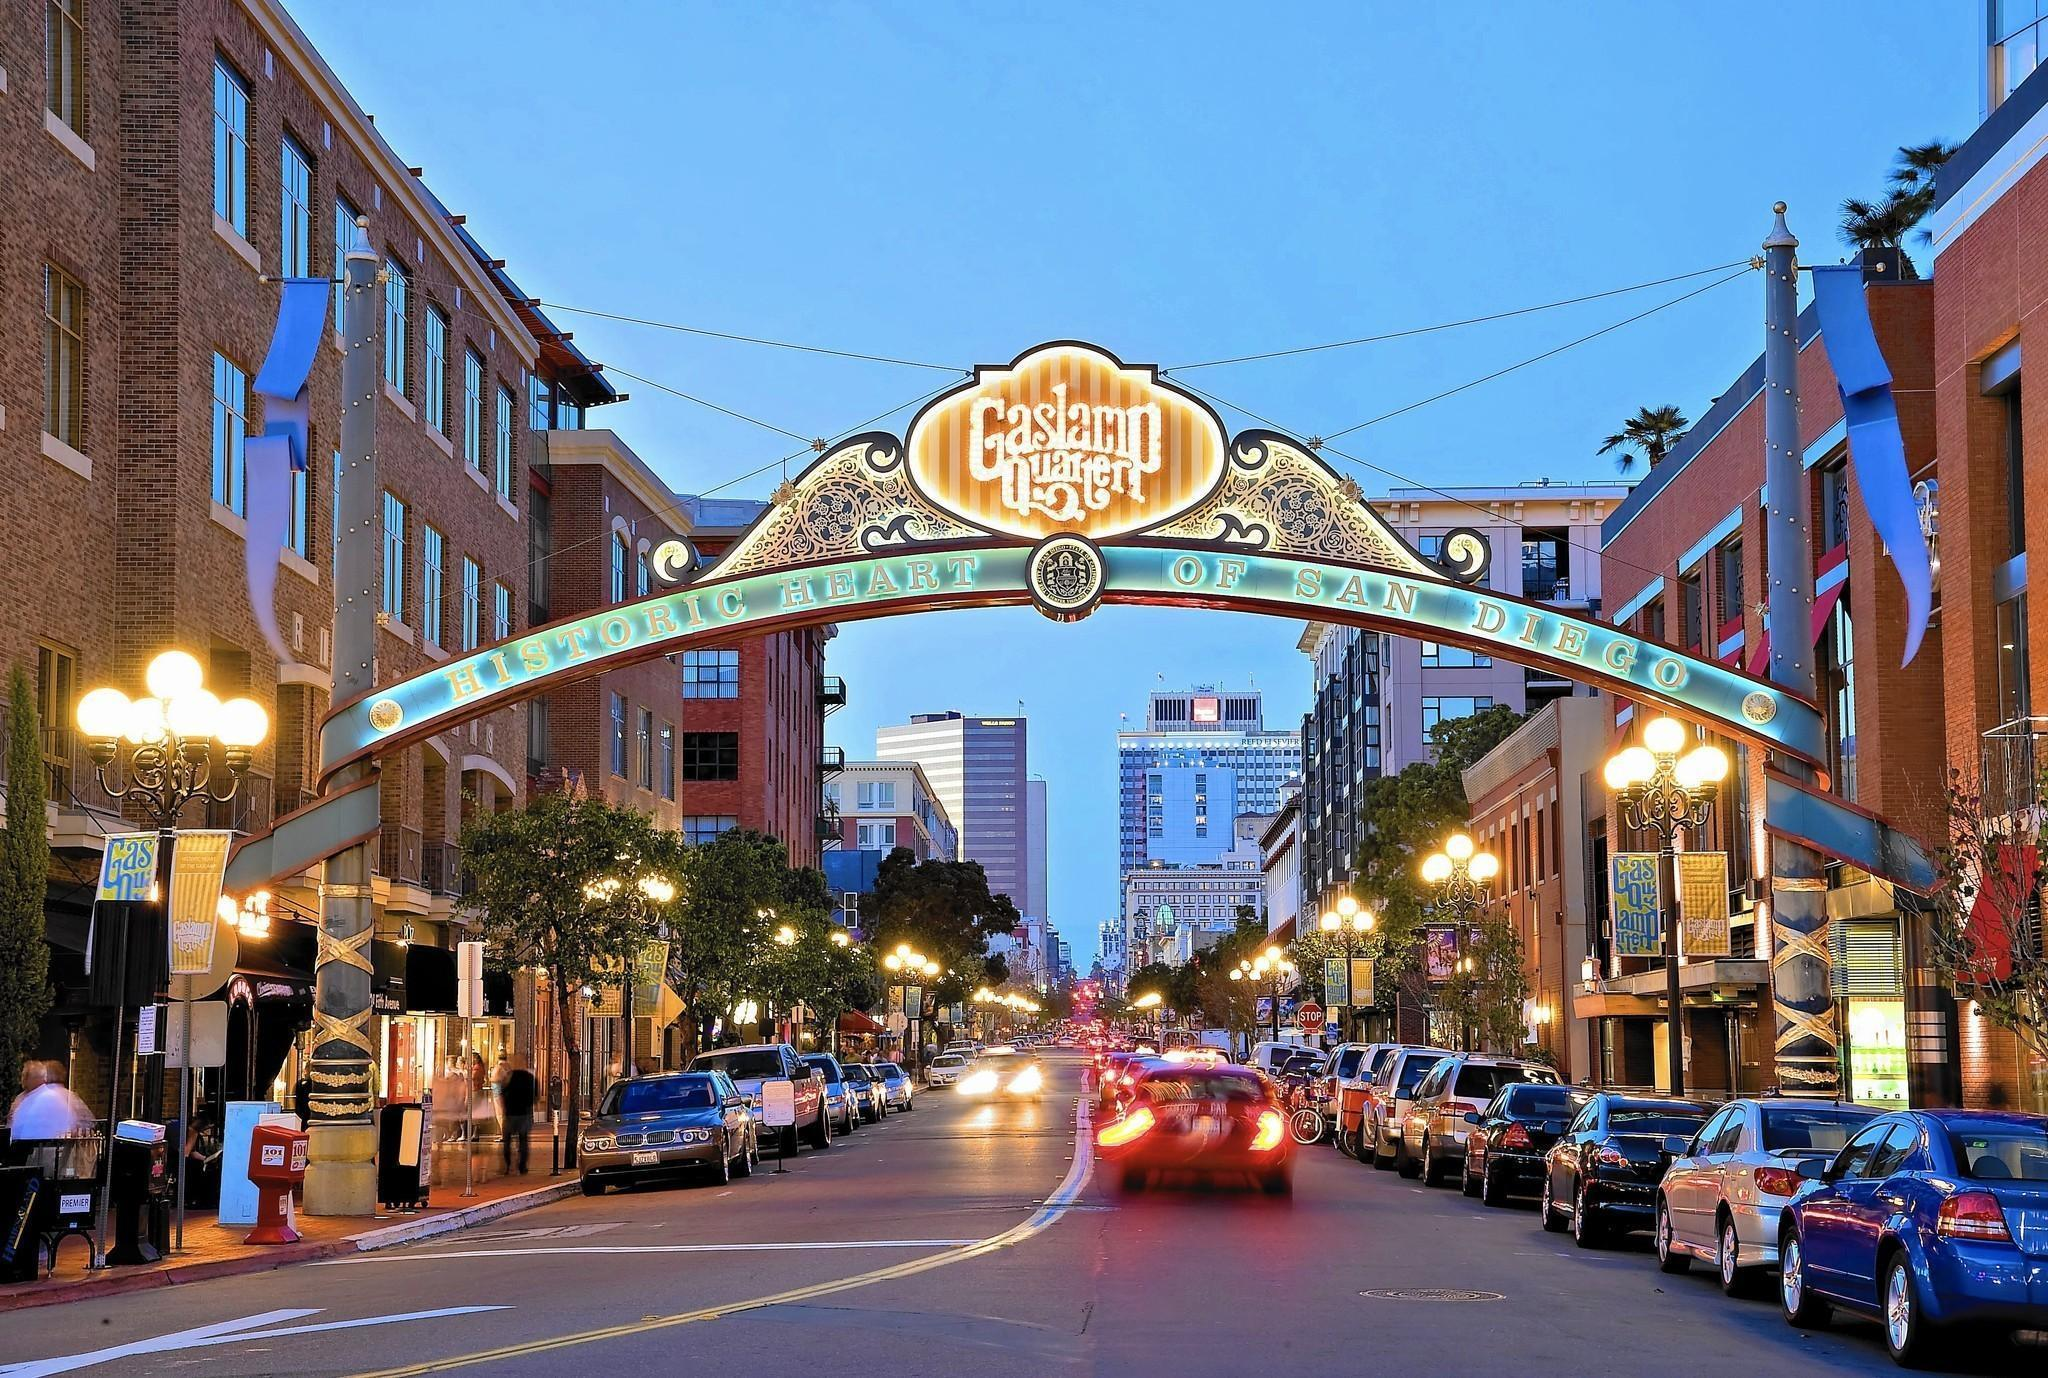 Gaslamp - The Gaslamp Quarter is becoming widely known for its incredible food, bustling nightlife, and diverse culture.Dining choices are plenty with options for al fresco on the sidewalks, sky high at a rooftop lounge, or in an intimate and ornately designed restaurant.